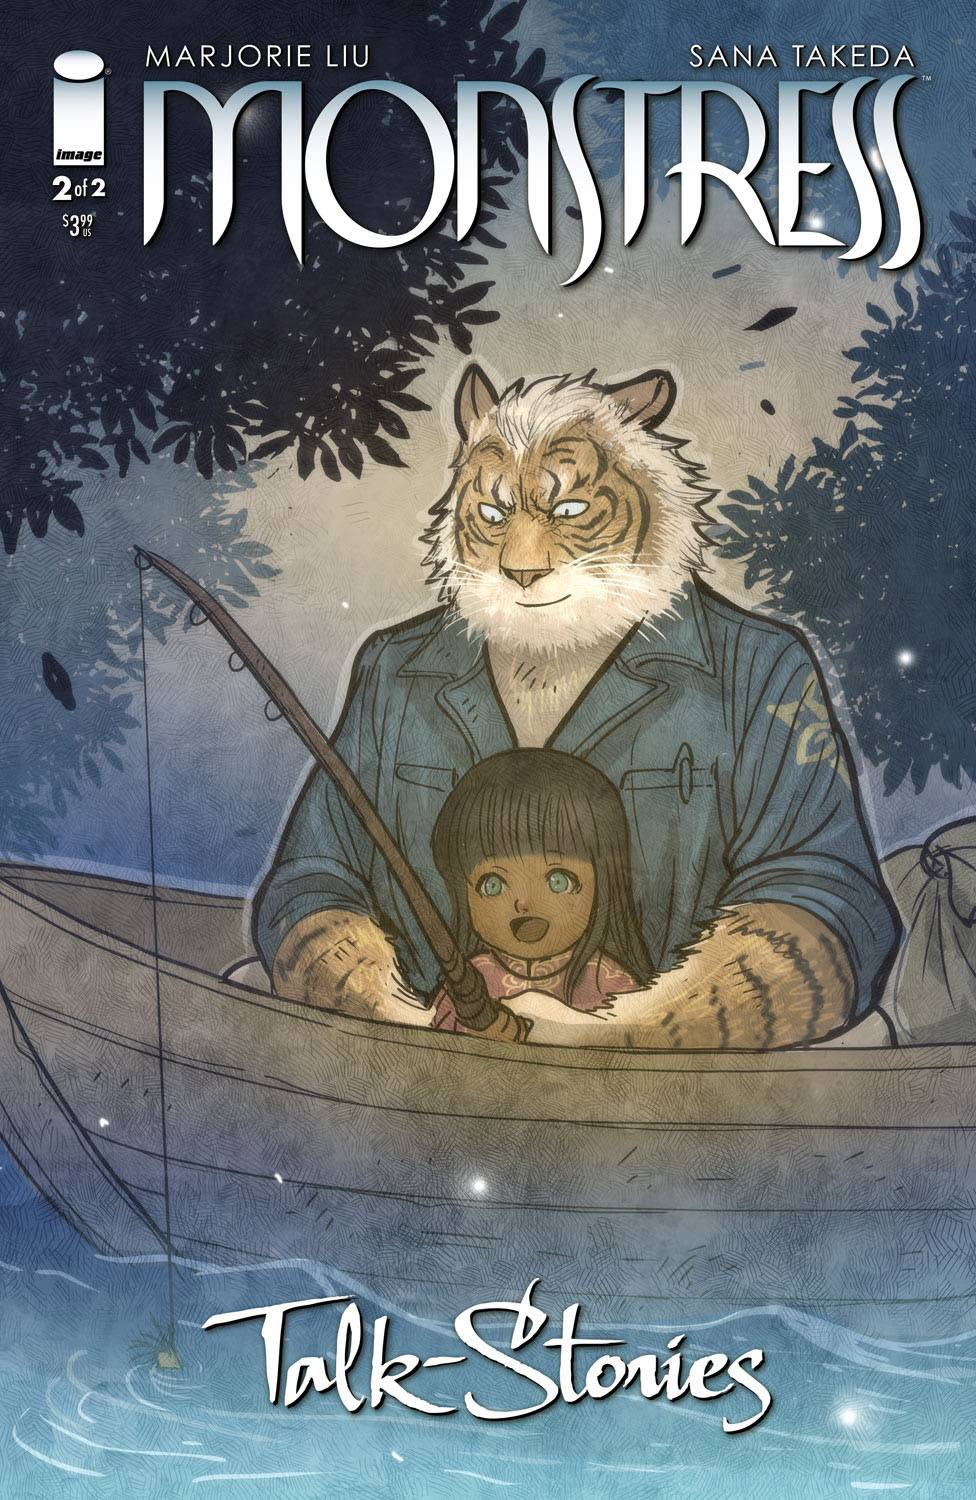 MONSTRESS TALK-STORIES #2 (OF 2) (MR)